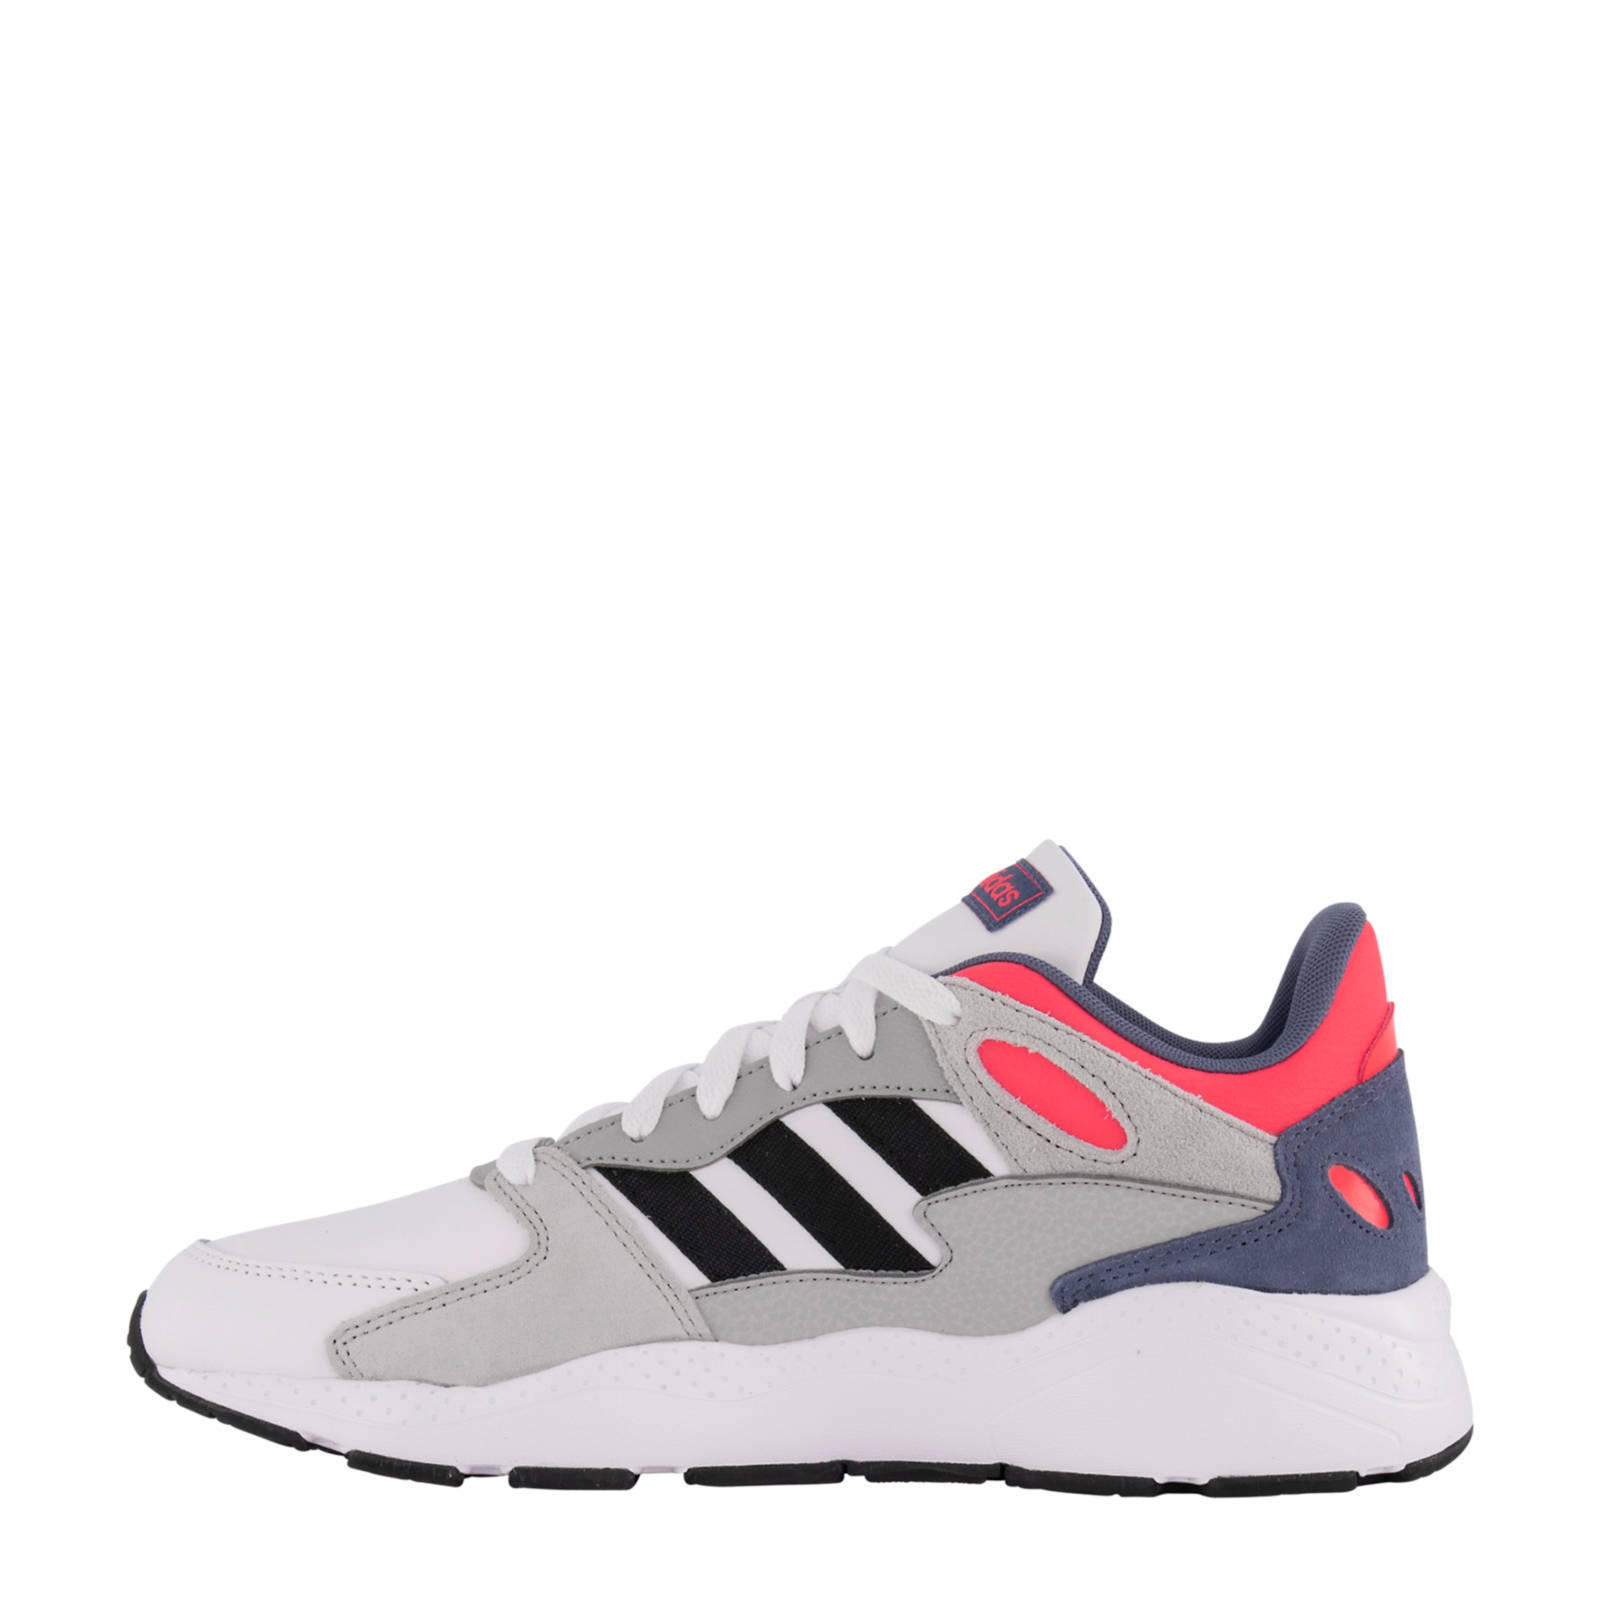 Chaos sneakers grijs/wit/rood